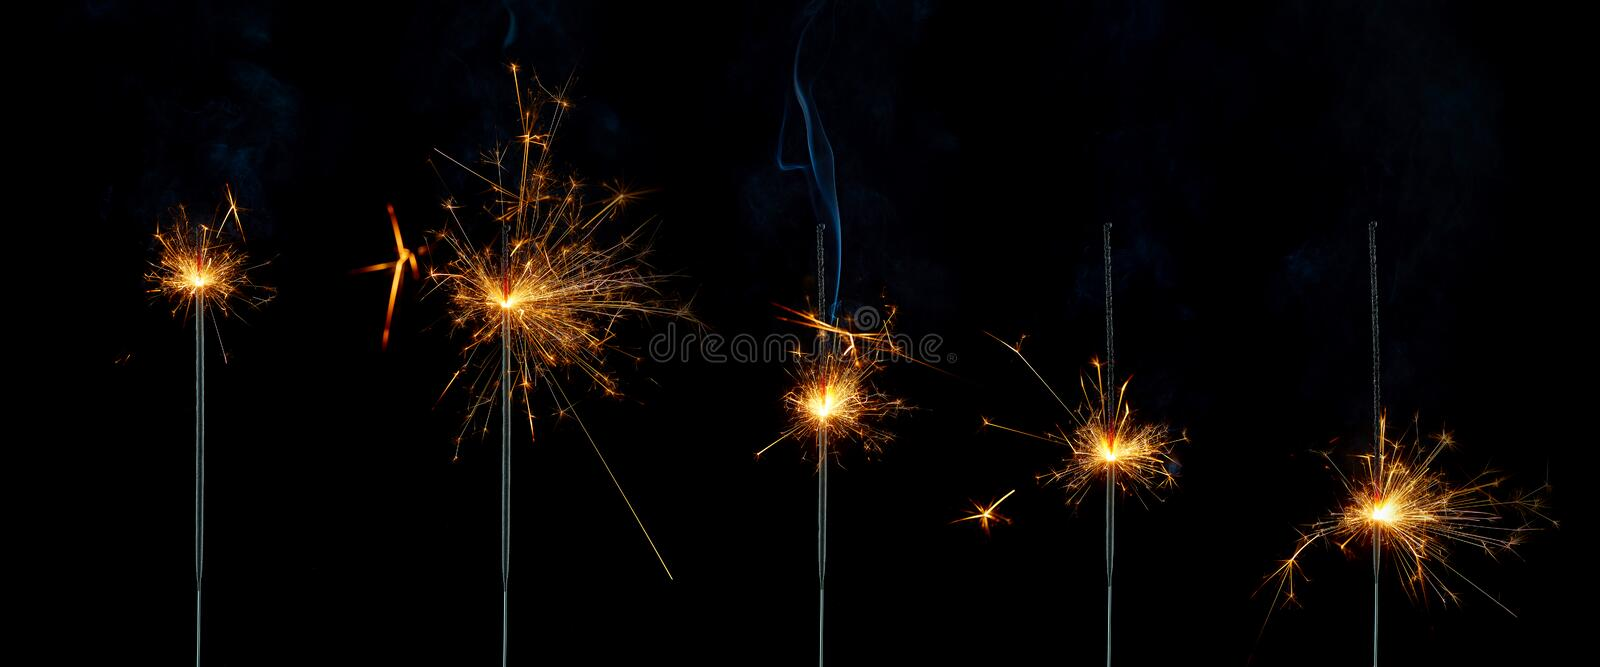 Five lighted sparklers at different stages of burning on a black background. Isolated image. Birthday inscription made of luminous and sparkling Bengali letters royalty free stock photo